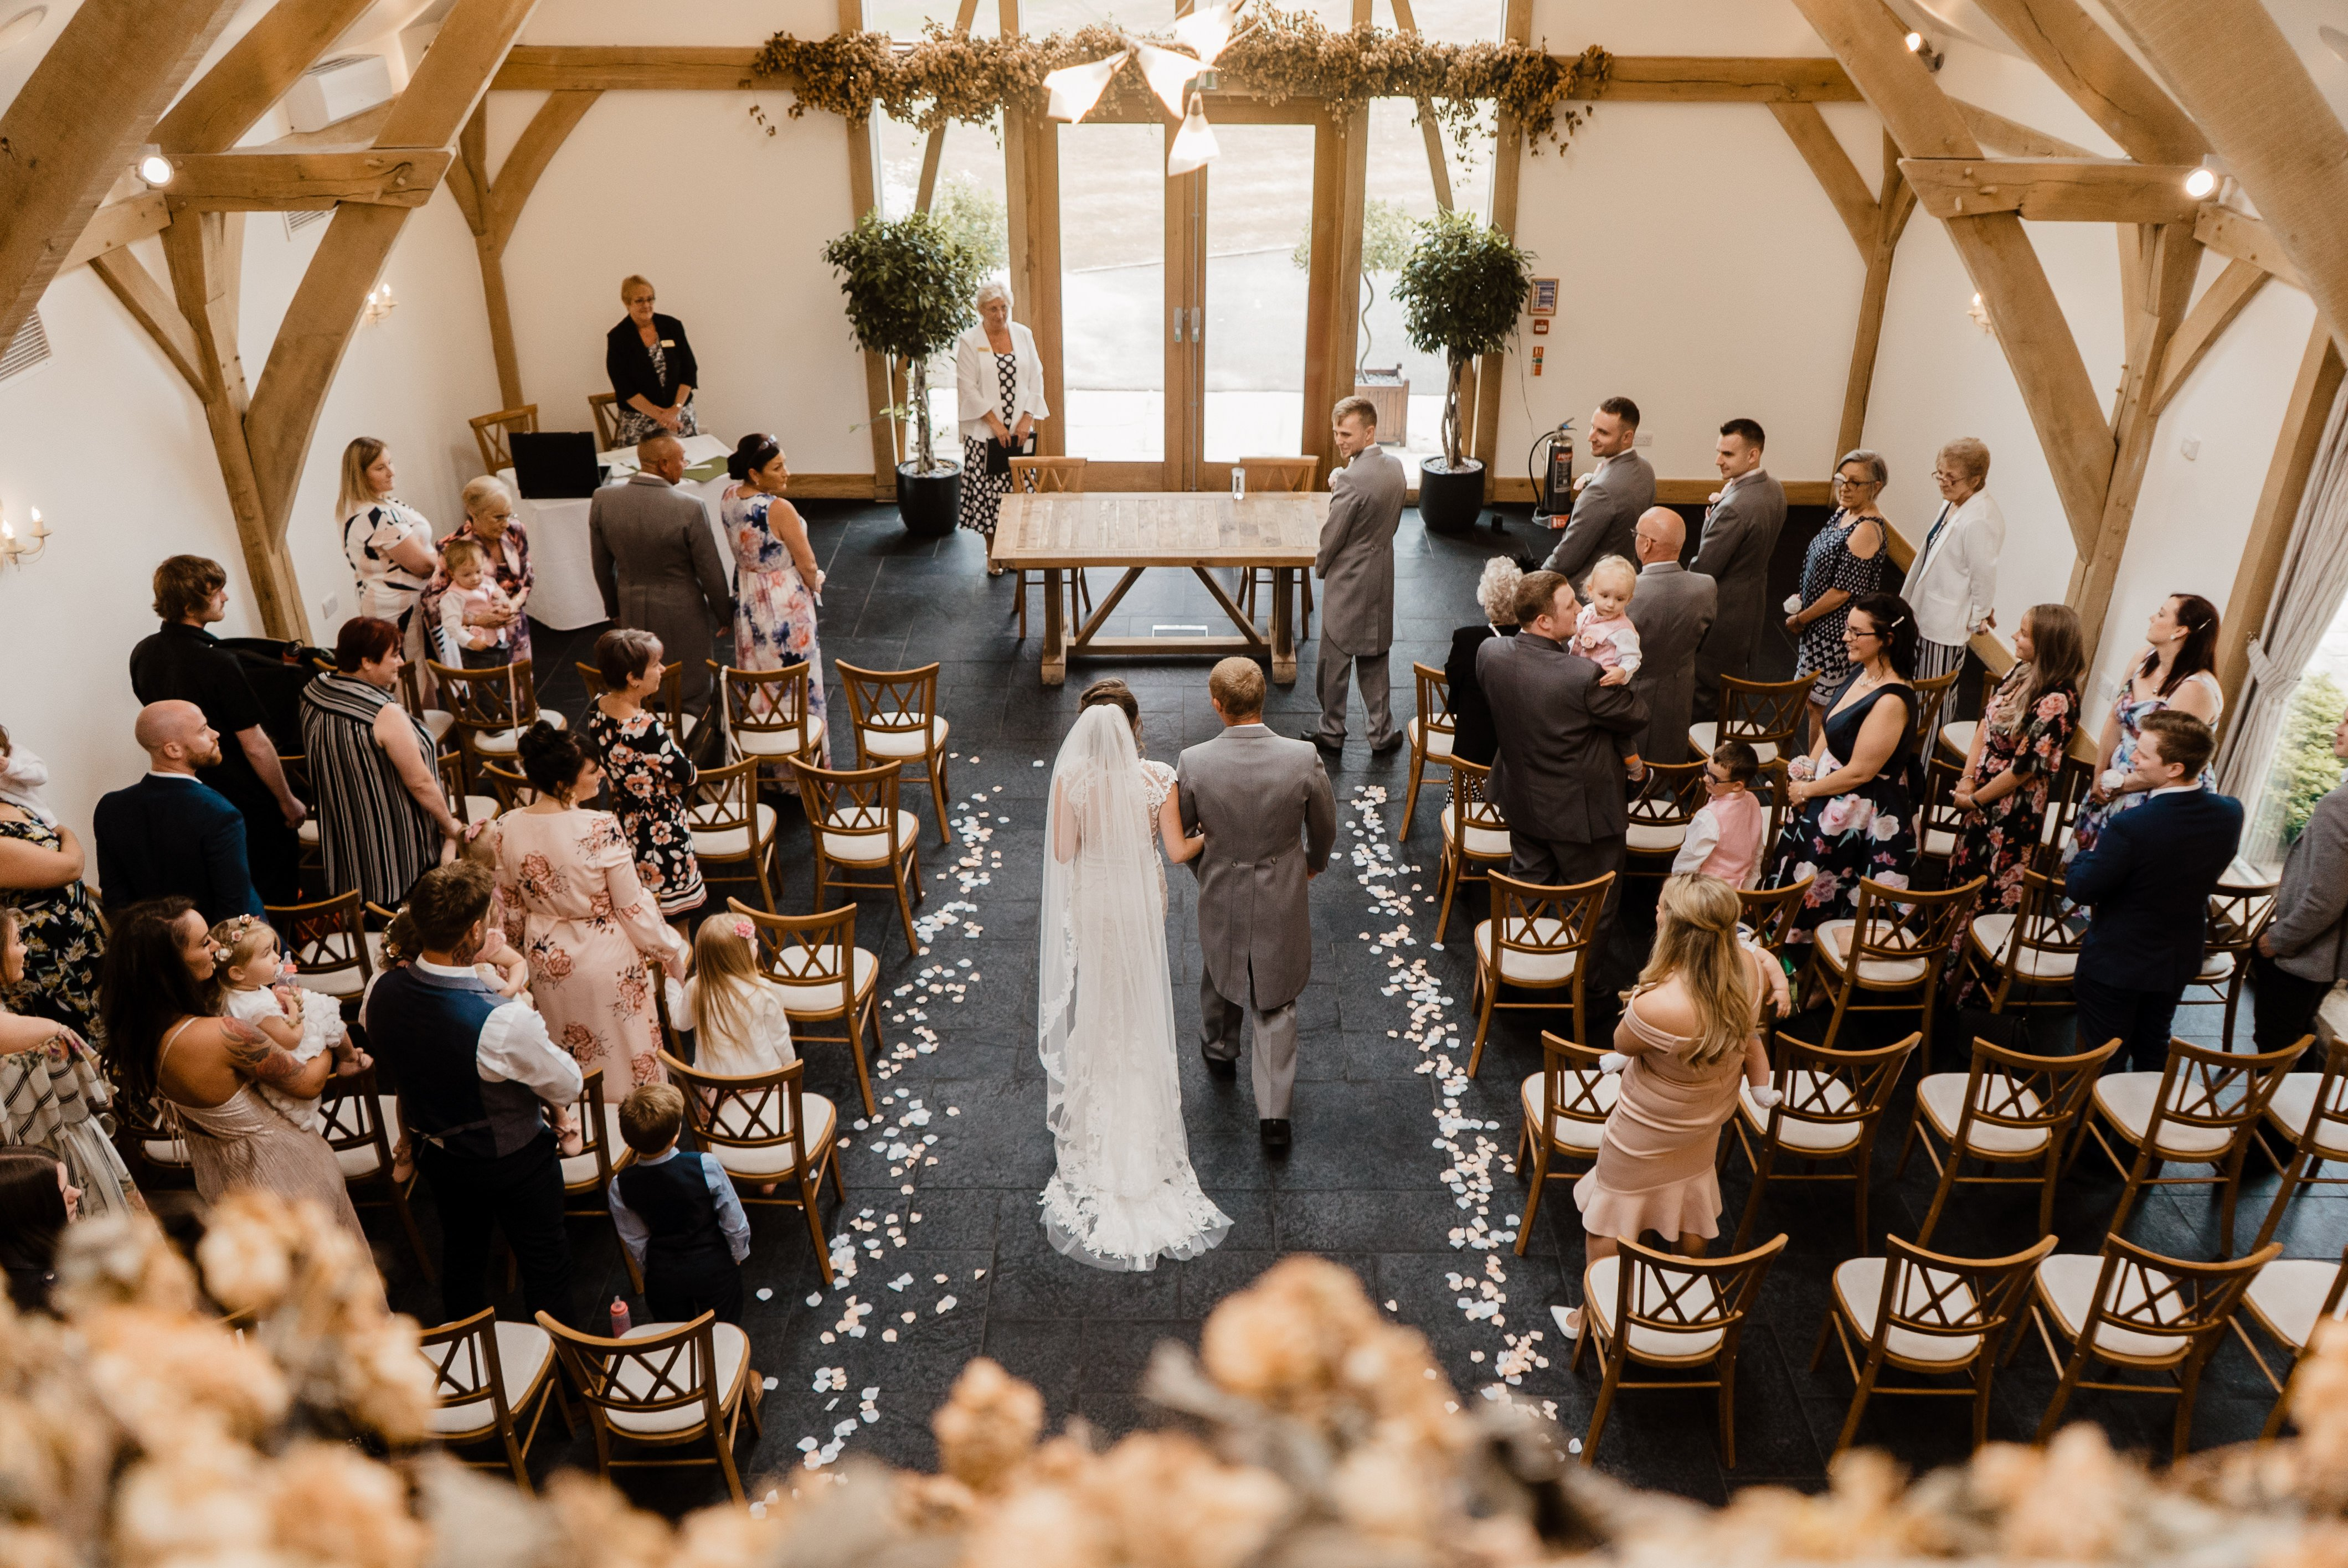 Sneak Peek - Sheryl & Sam Mythe Barn Wedding Ceremony 9